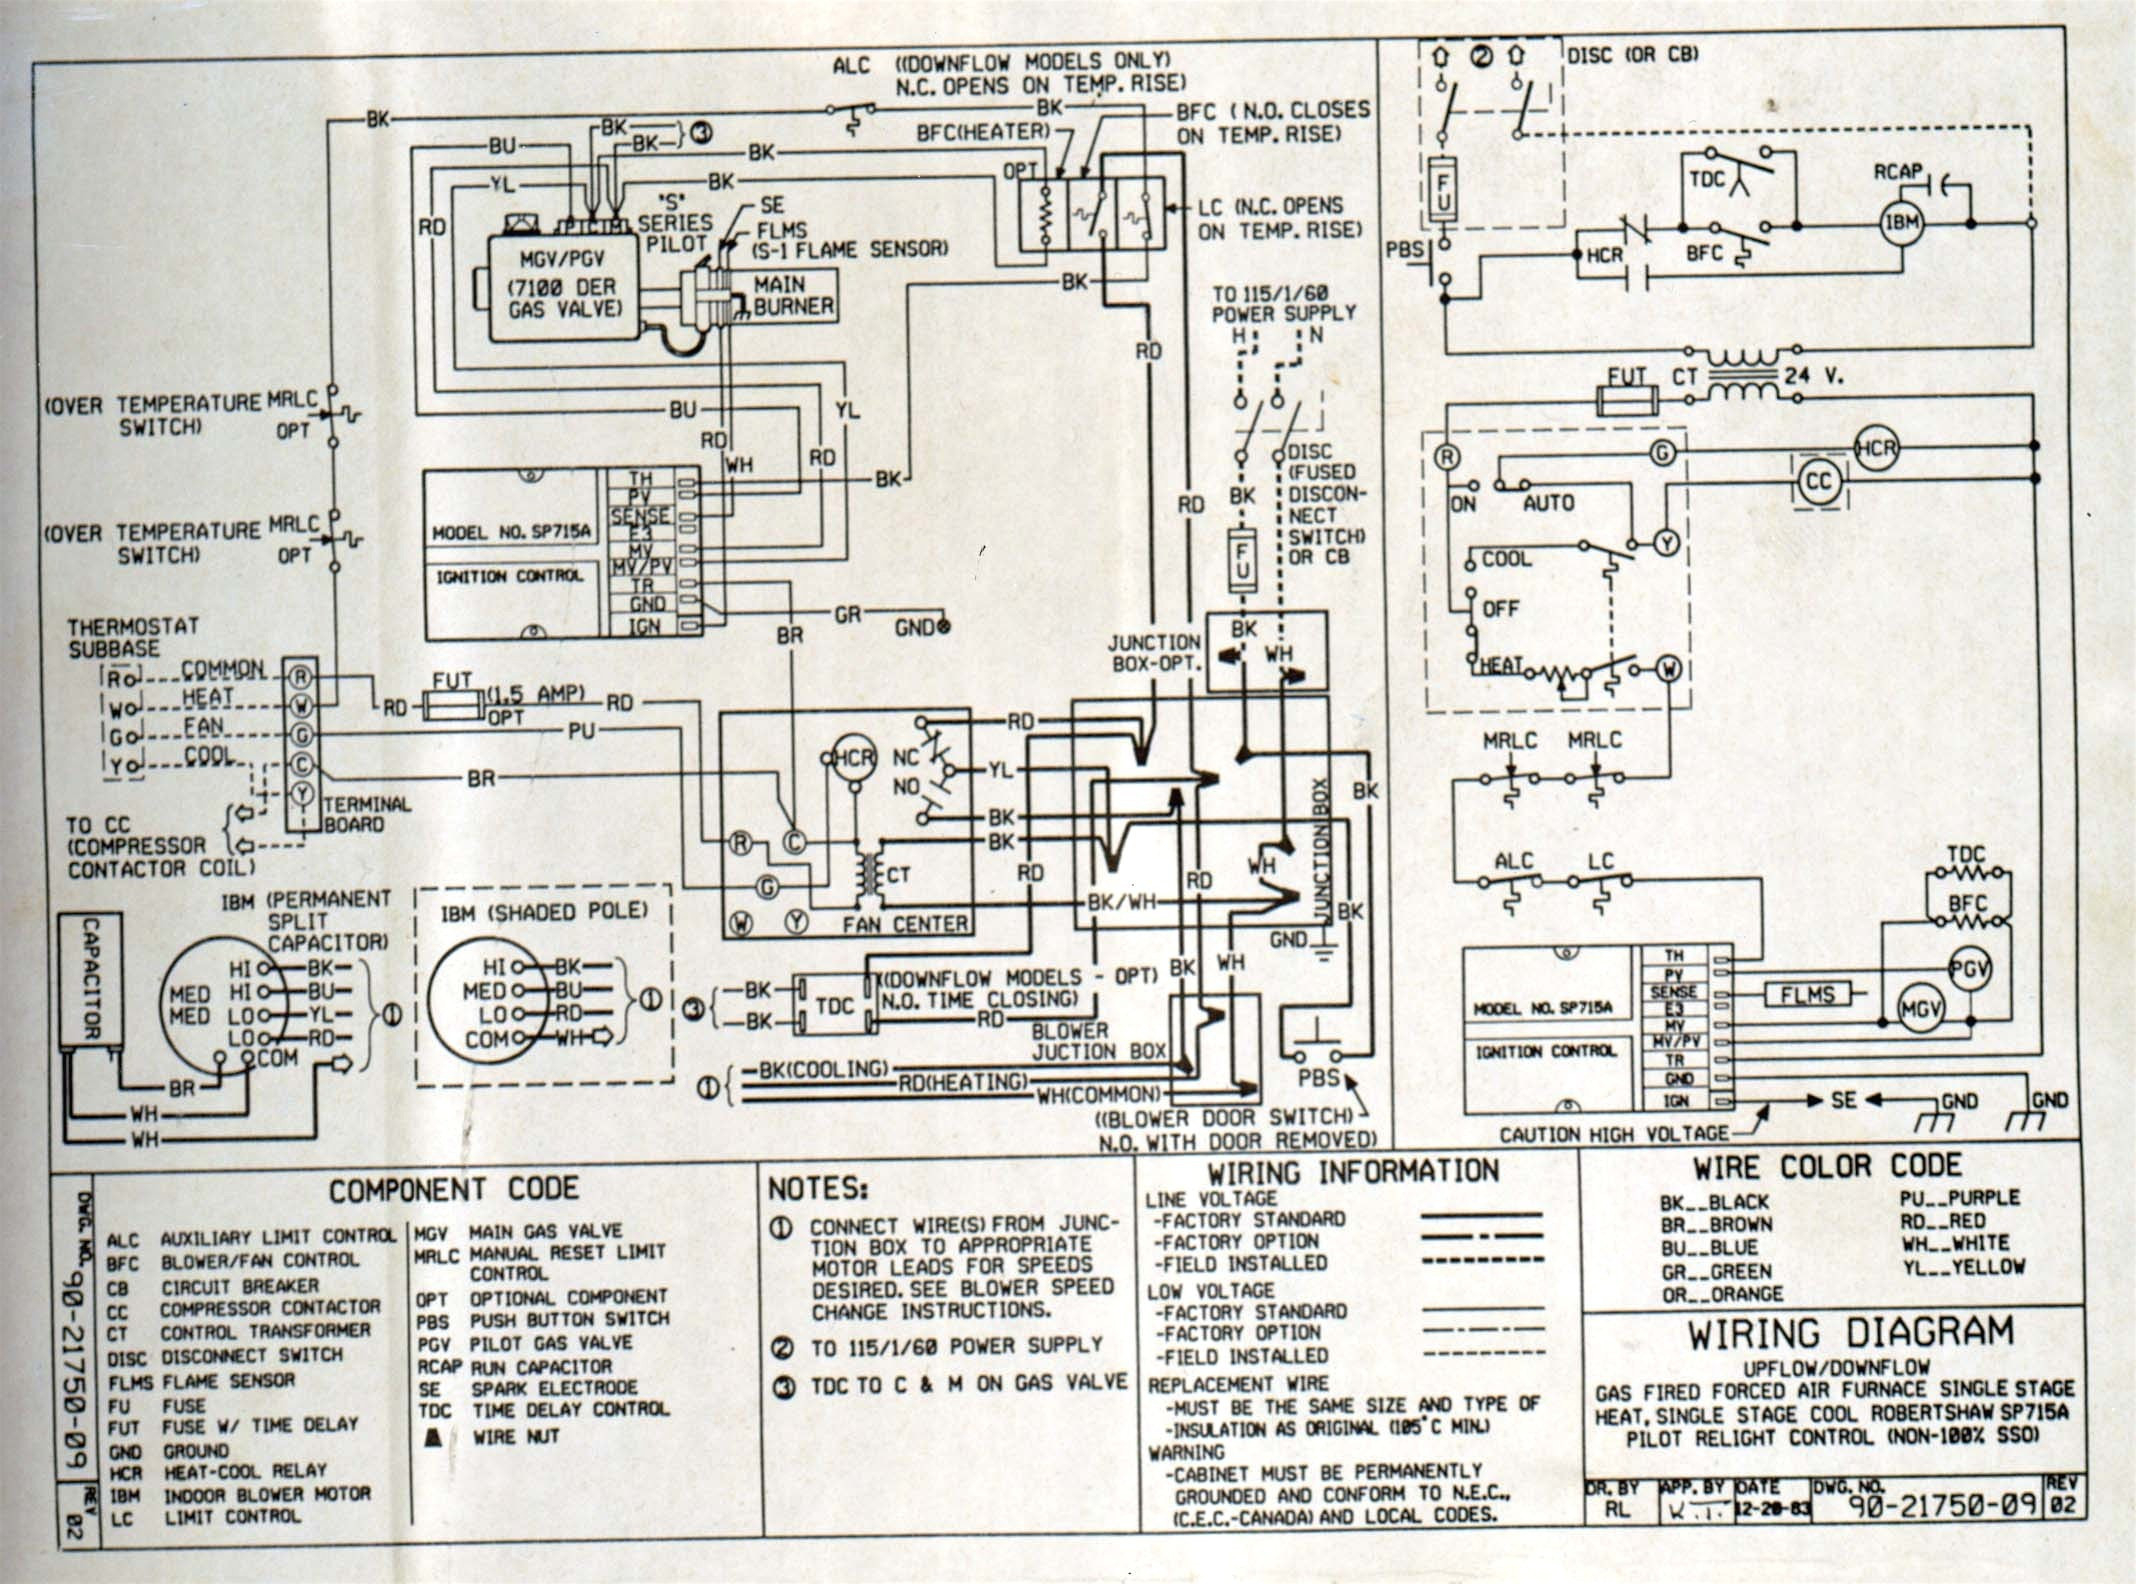 hvac heat pump wiring diagram - ameristar air handler wiring diagram wire  center u2022 rh stevcup